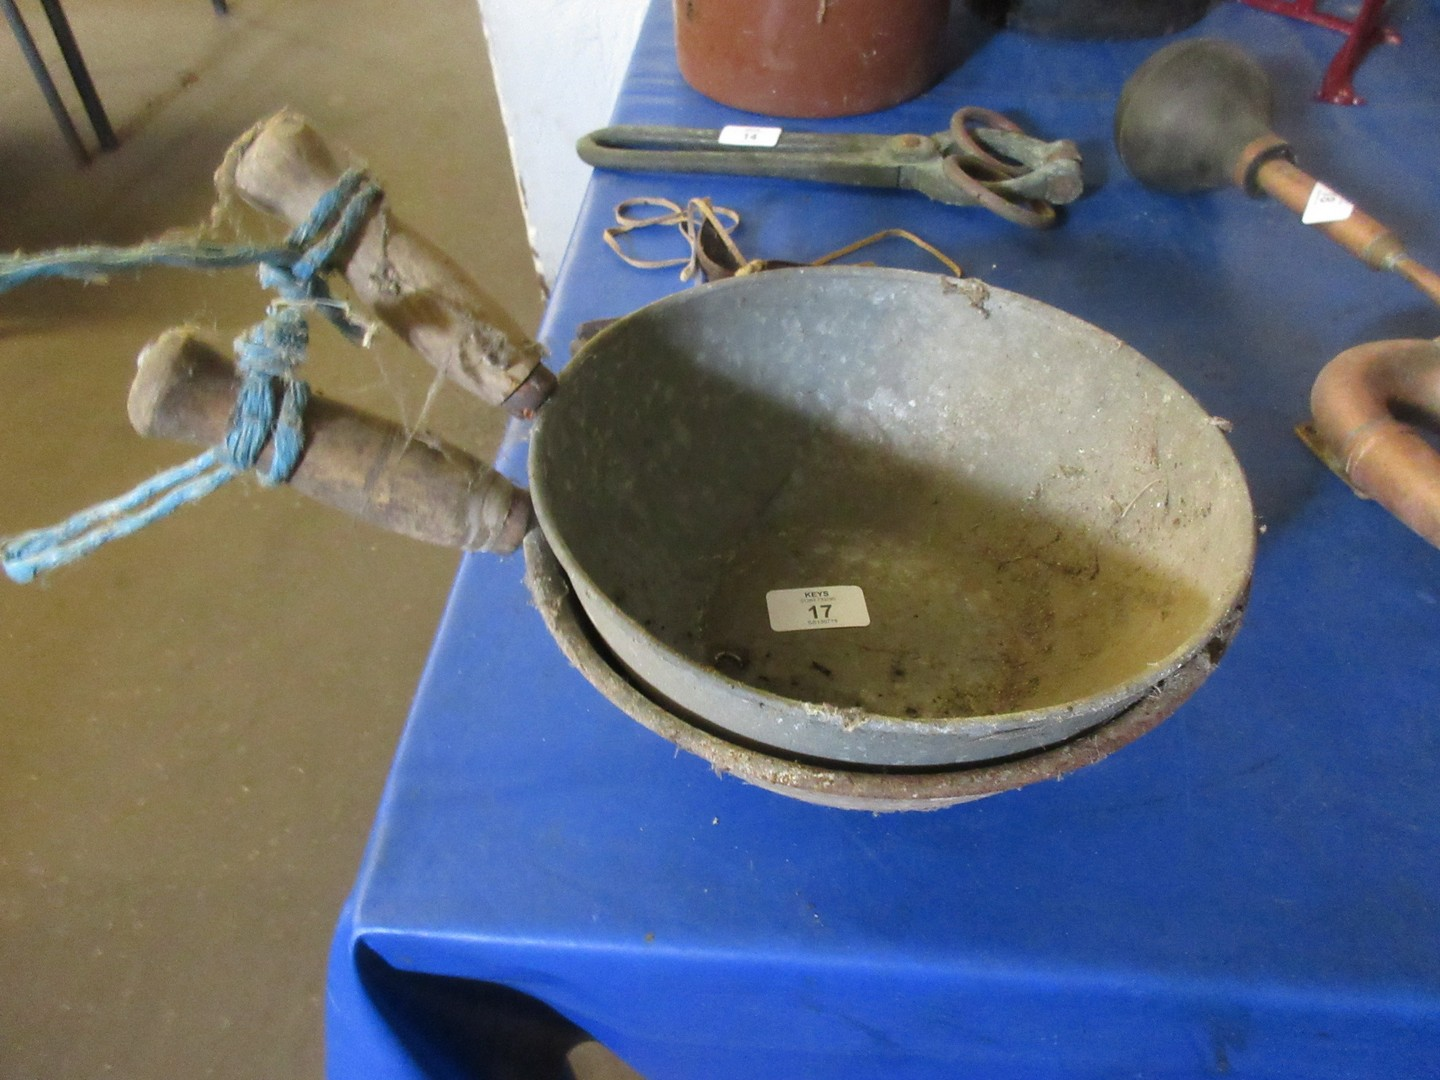 Lot 17 - Two hand cups or feed measures